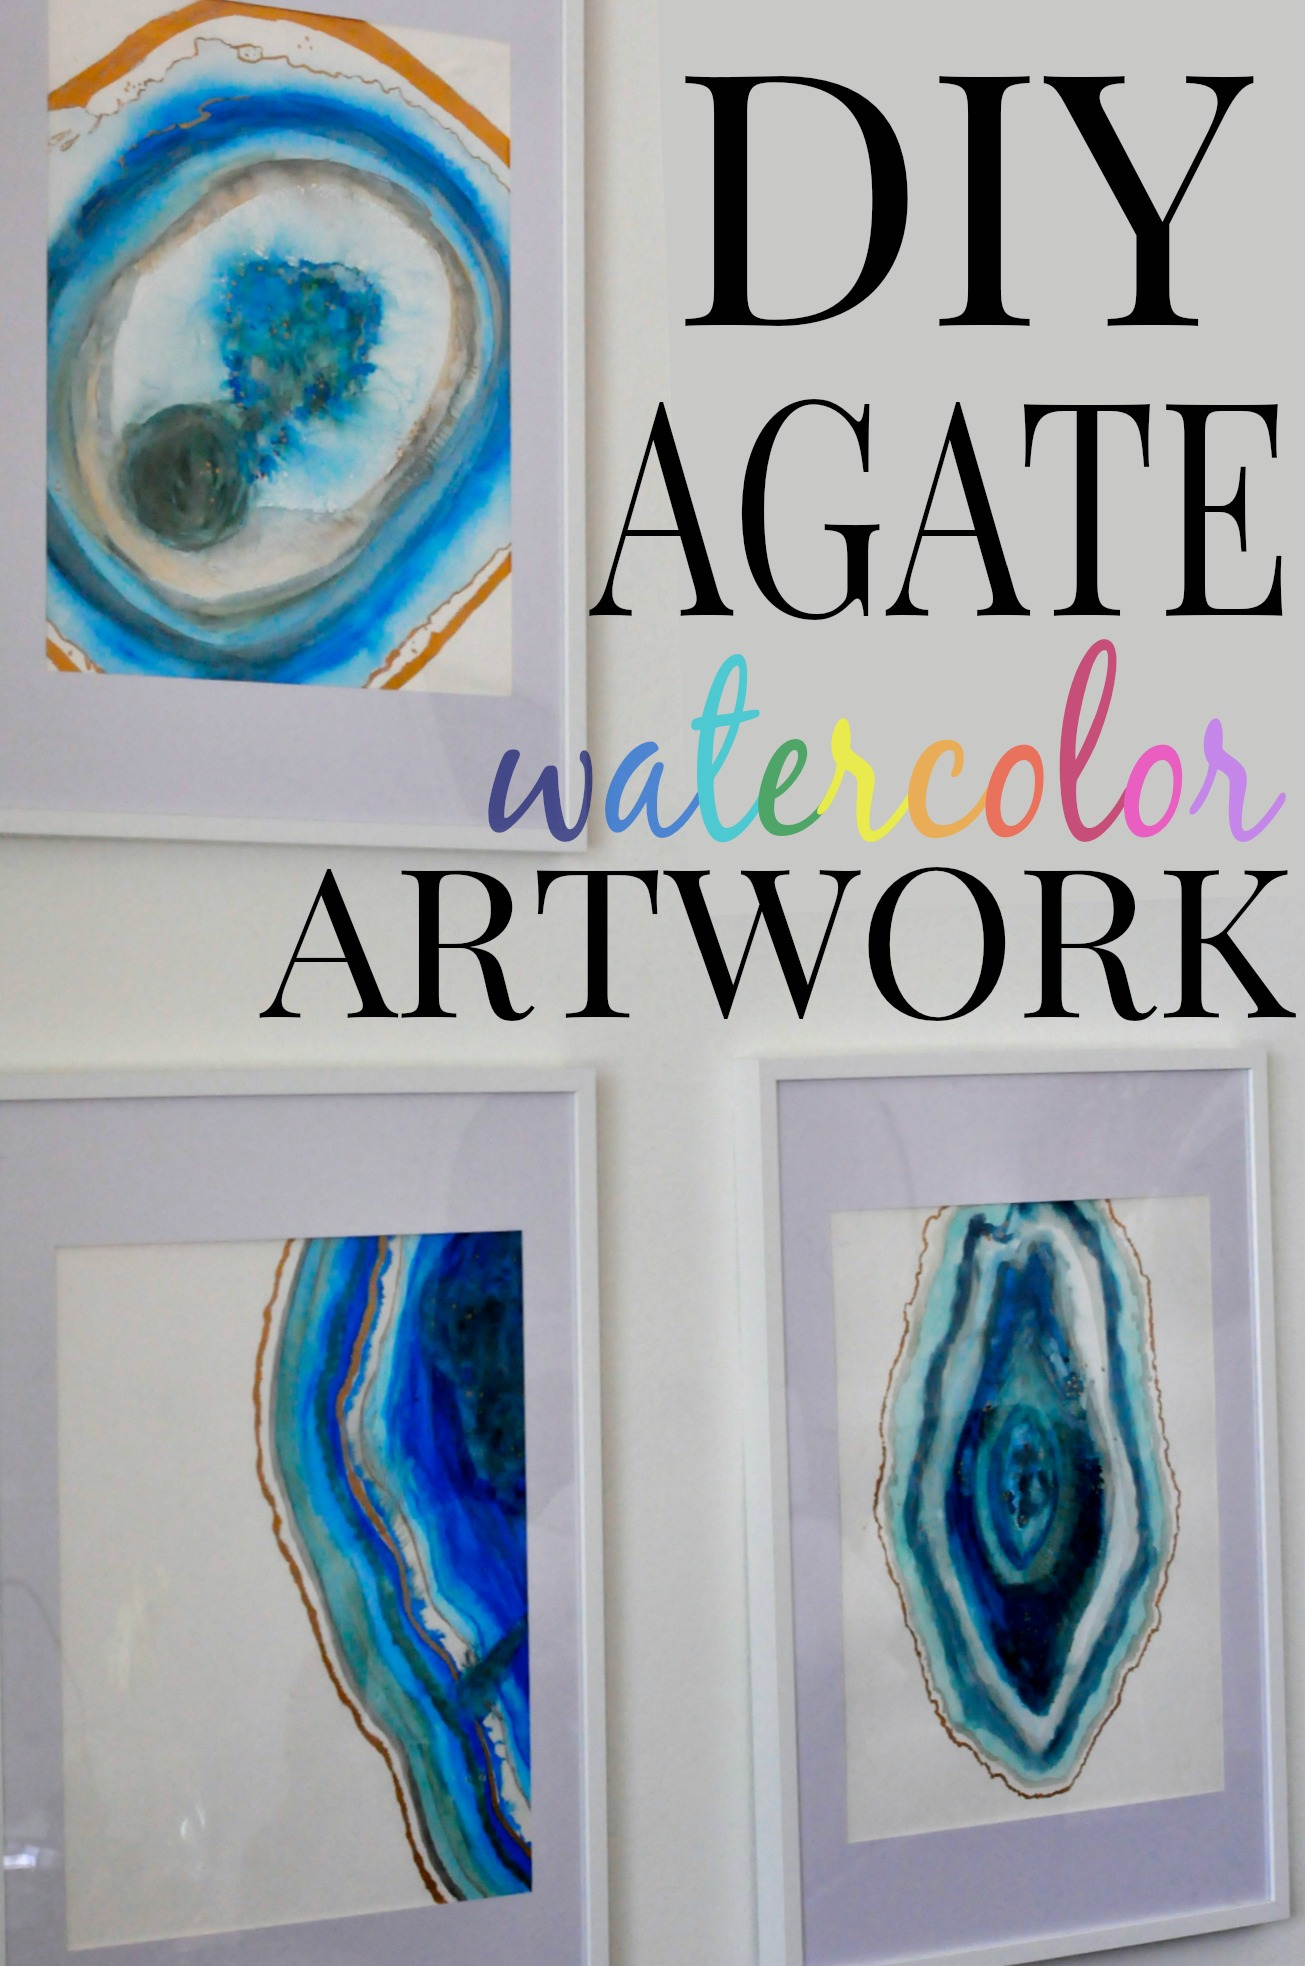 Diy agate watercolor artwork first home love life for Diy paint